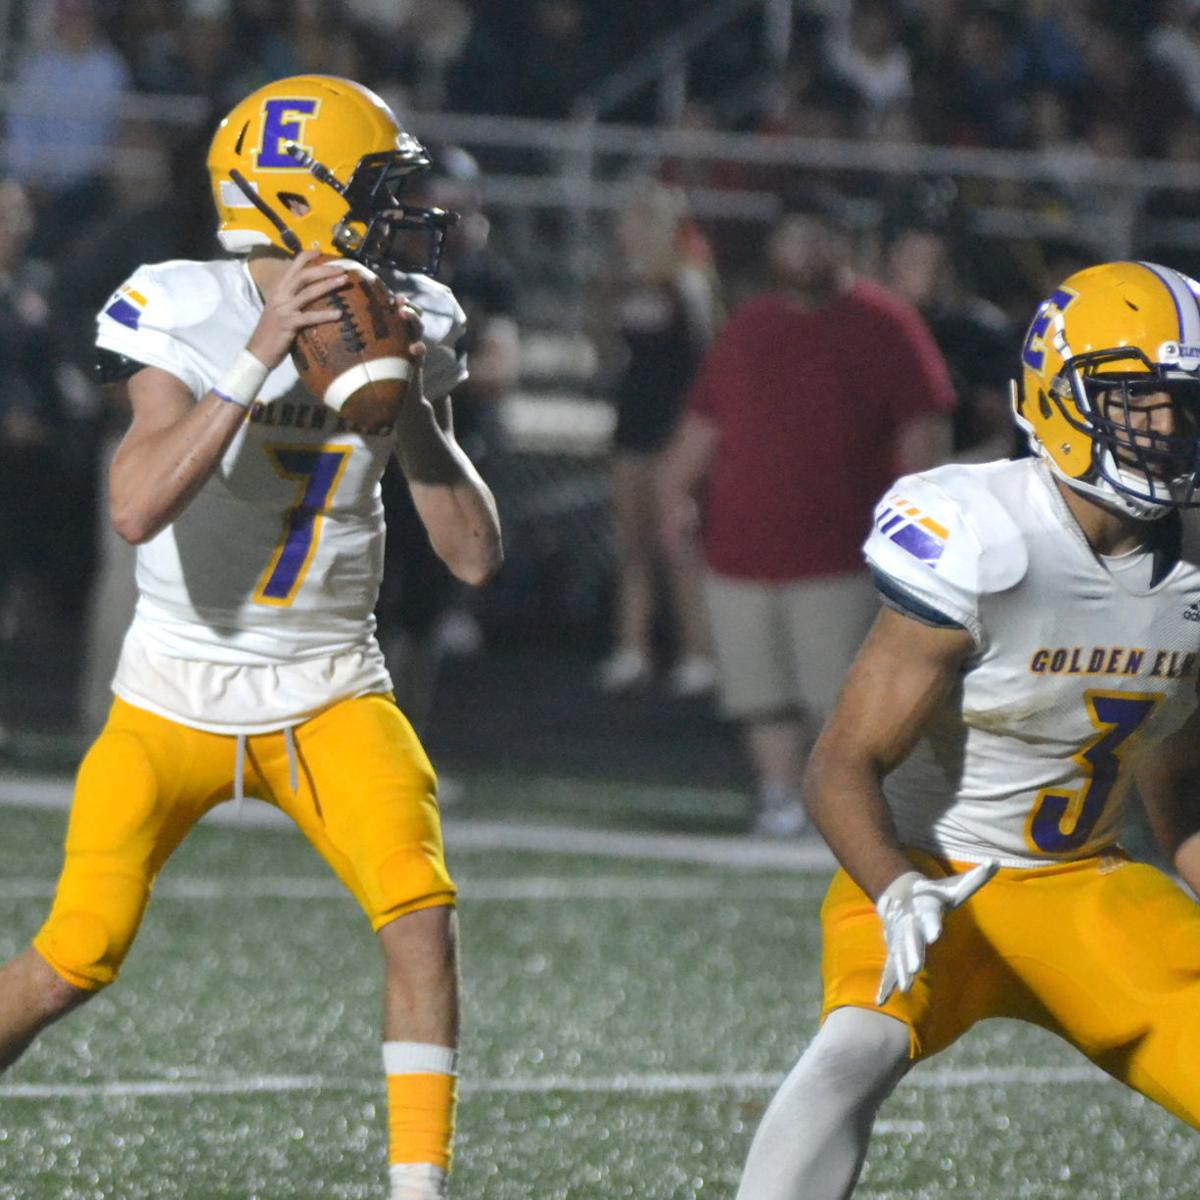 Golden Elks continue to roll with dominant 42-8 win over Rams